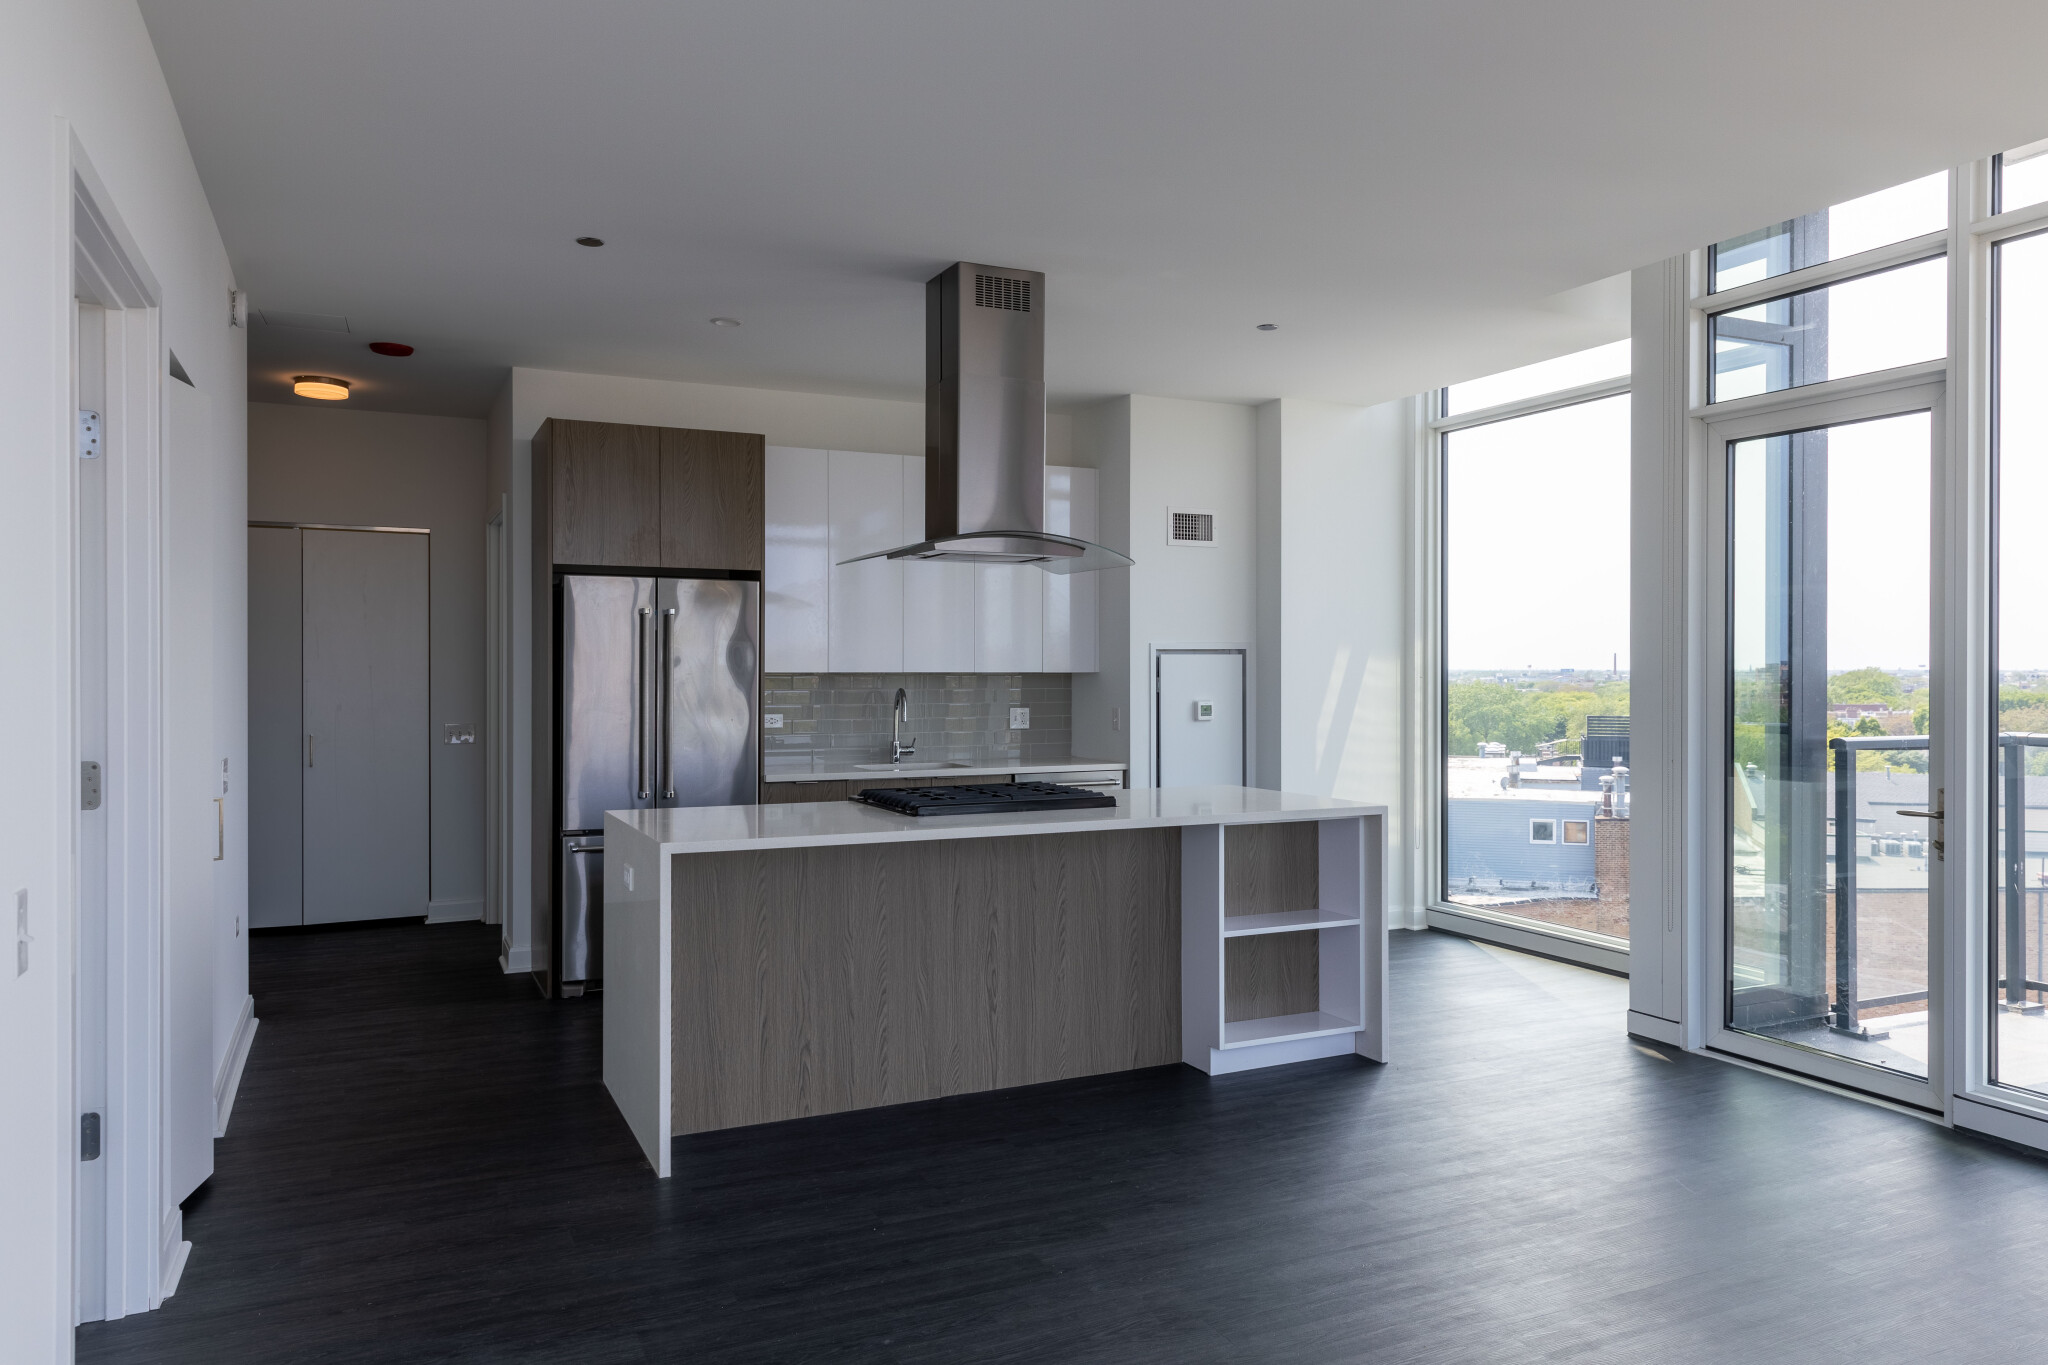 2 Beds, 2 Baths apartment in Chicago for $4,950